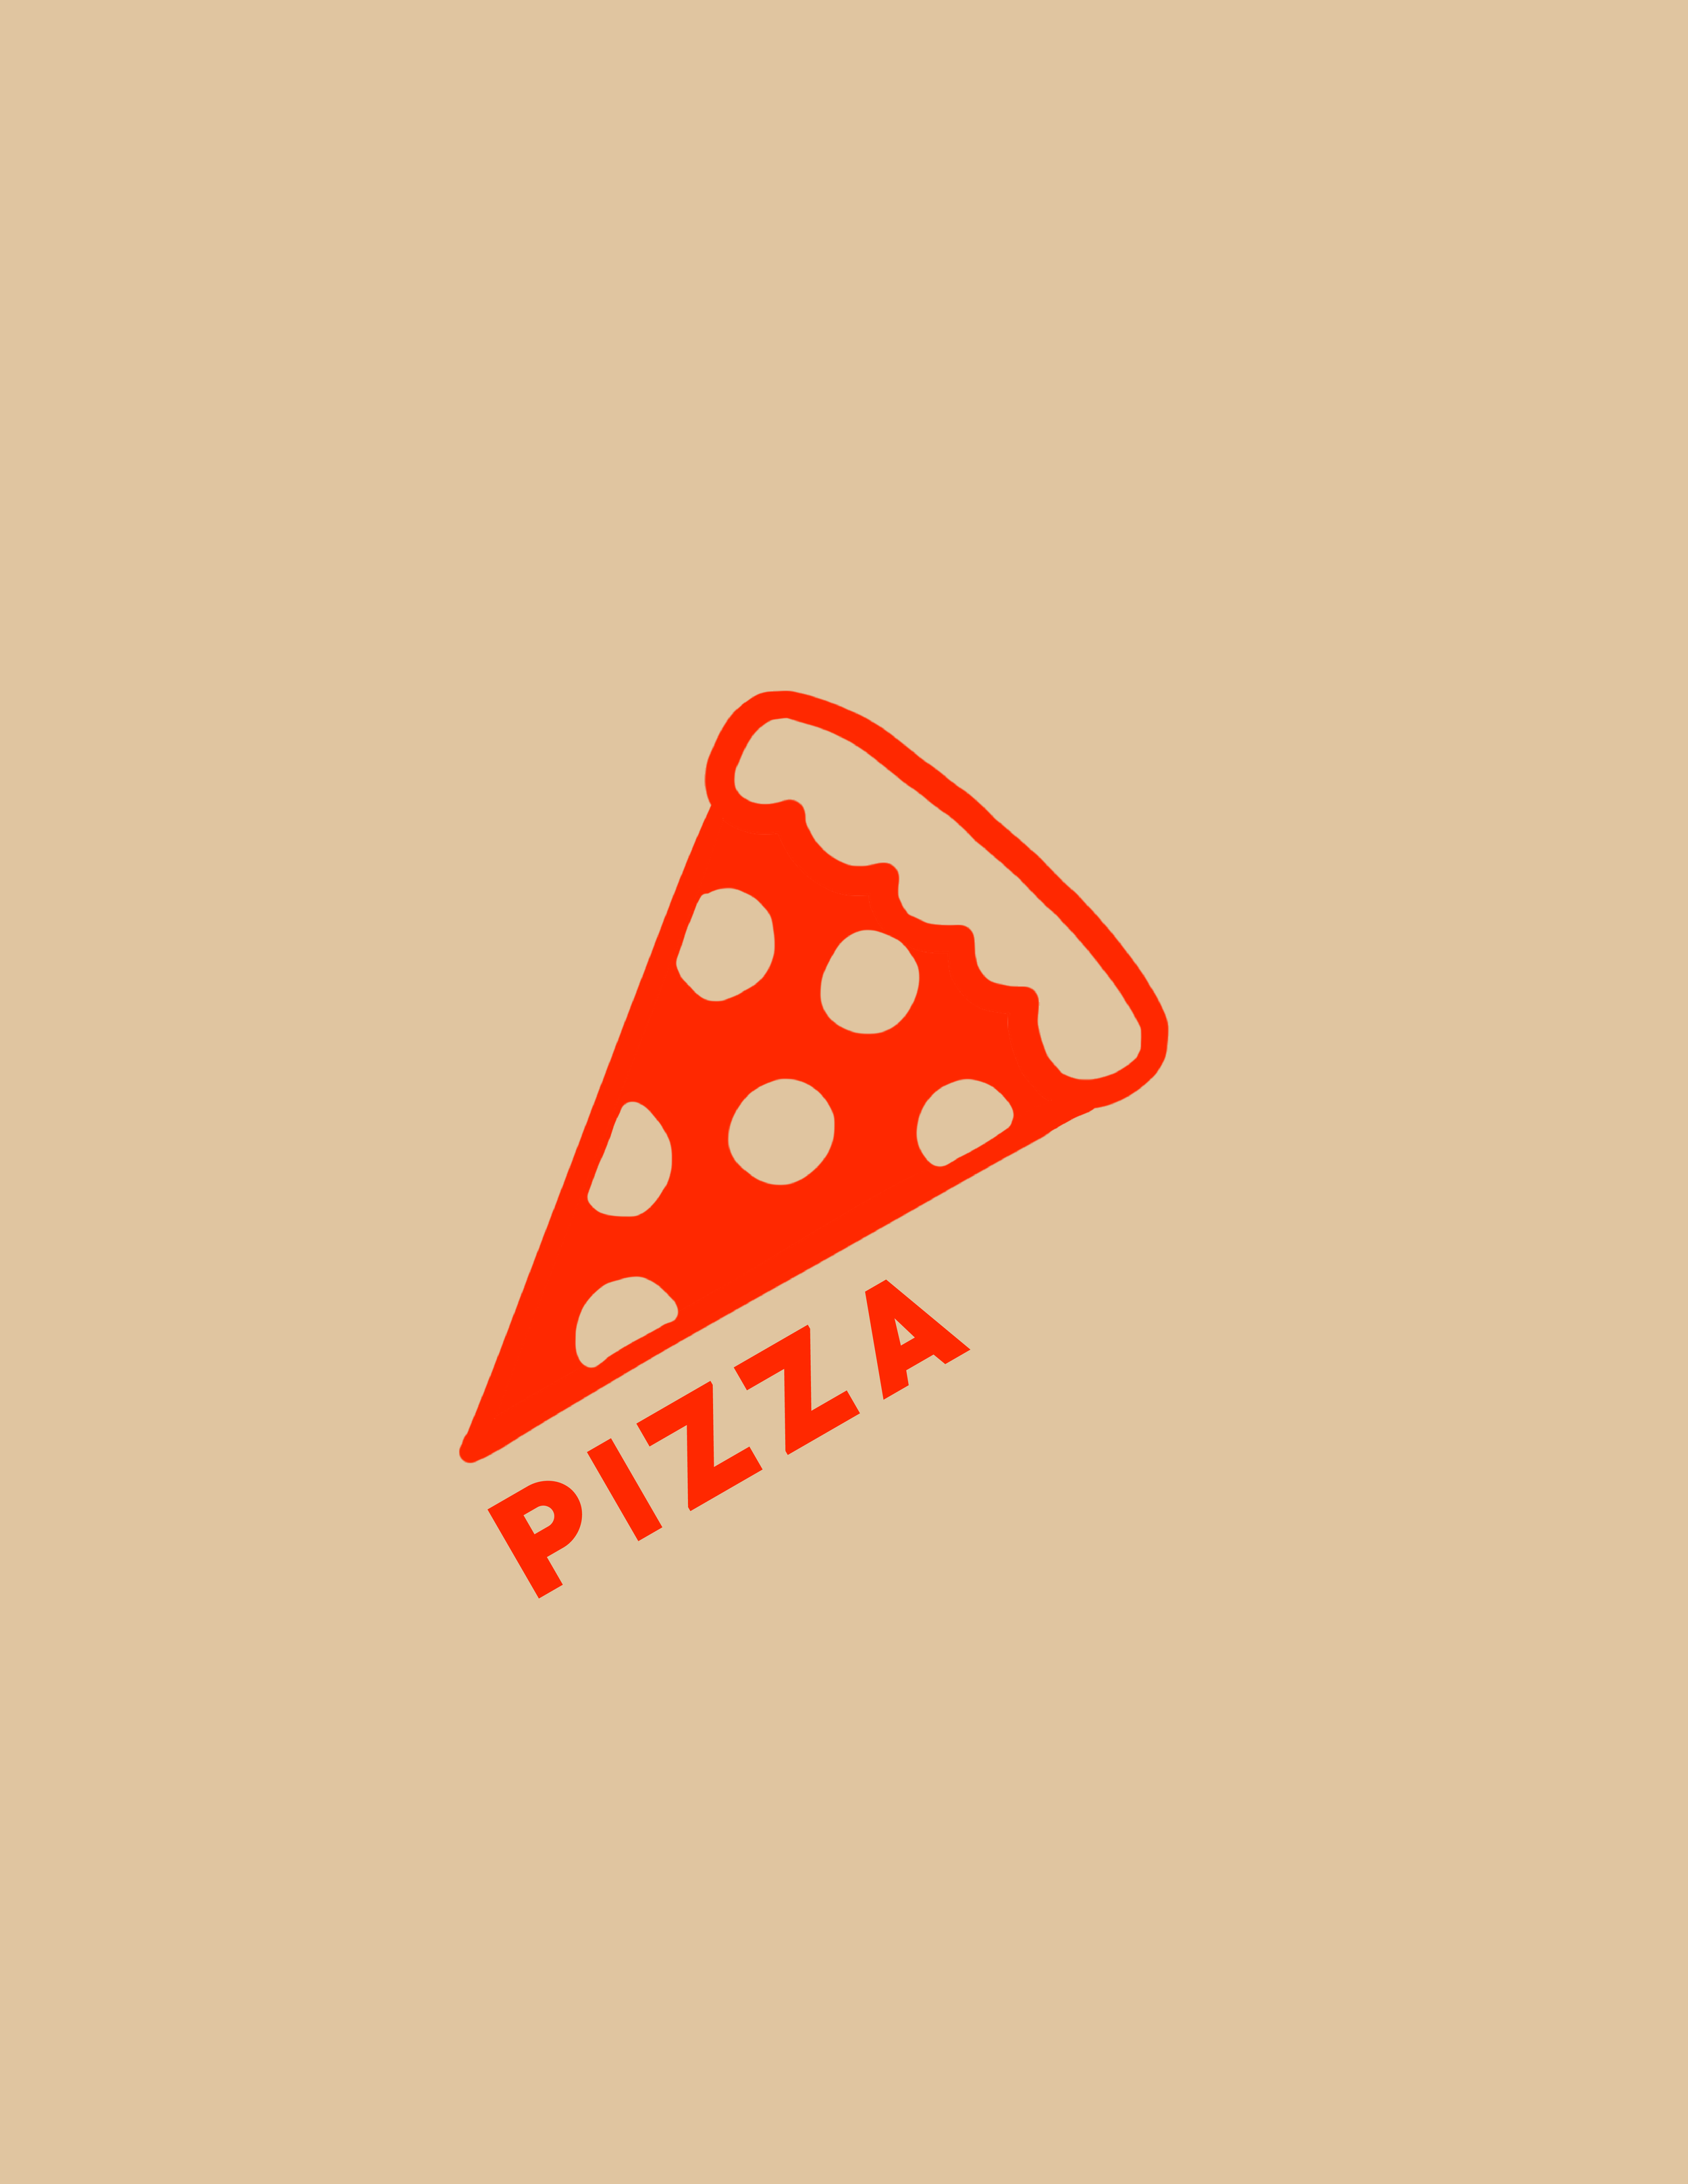 PIZZA - Digital Illustration